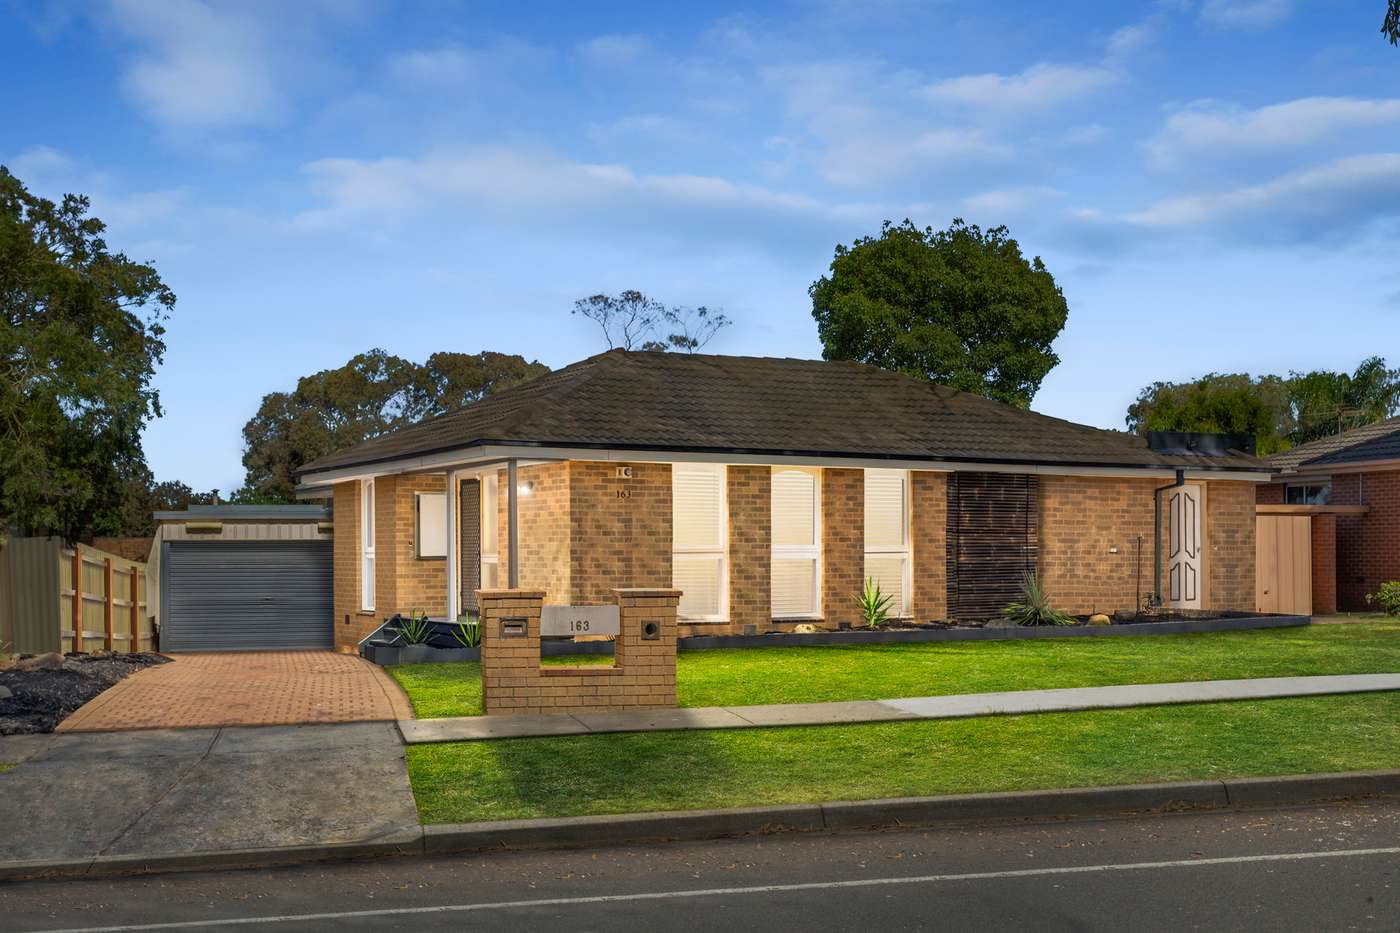 Main view of Homely house listing, 163 Mill Park Drive, Mill Park, VIC 3082